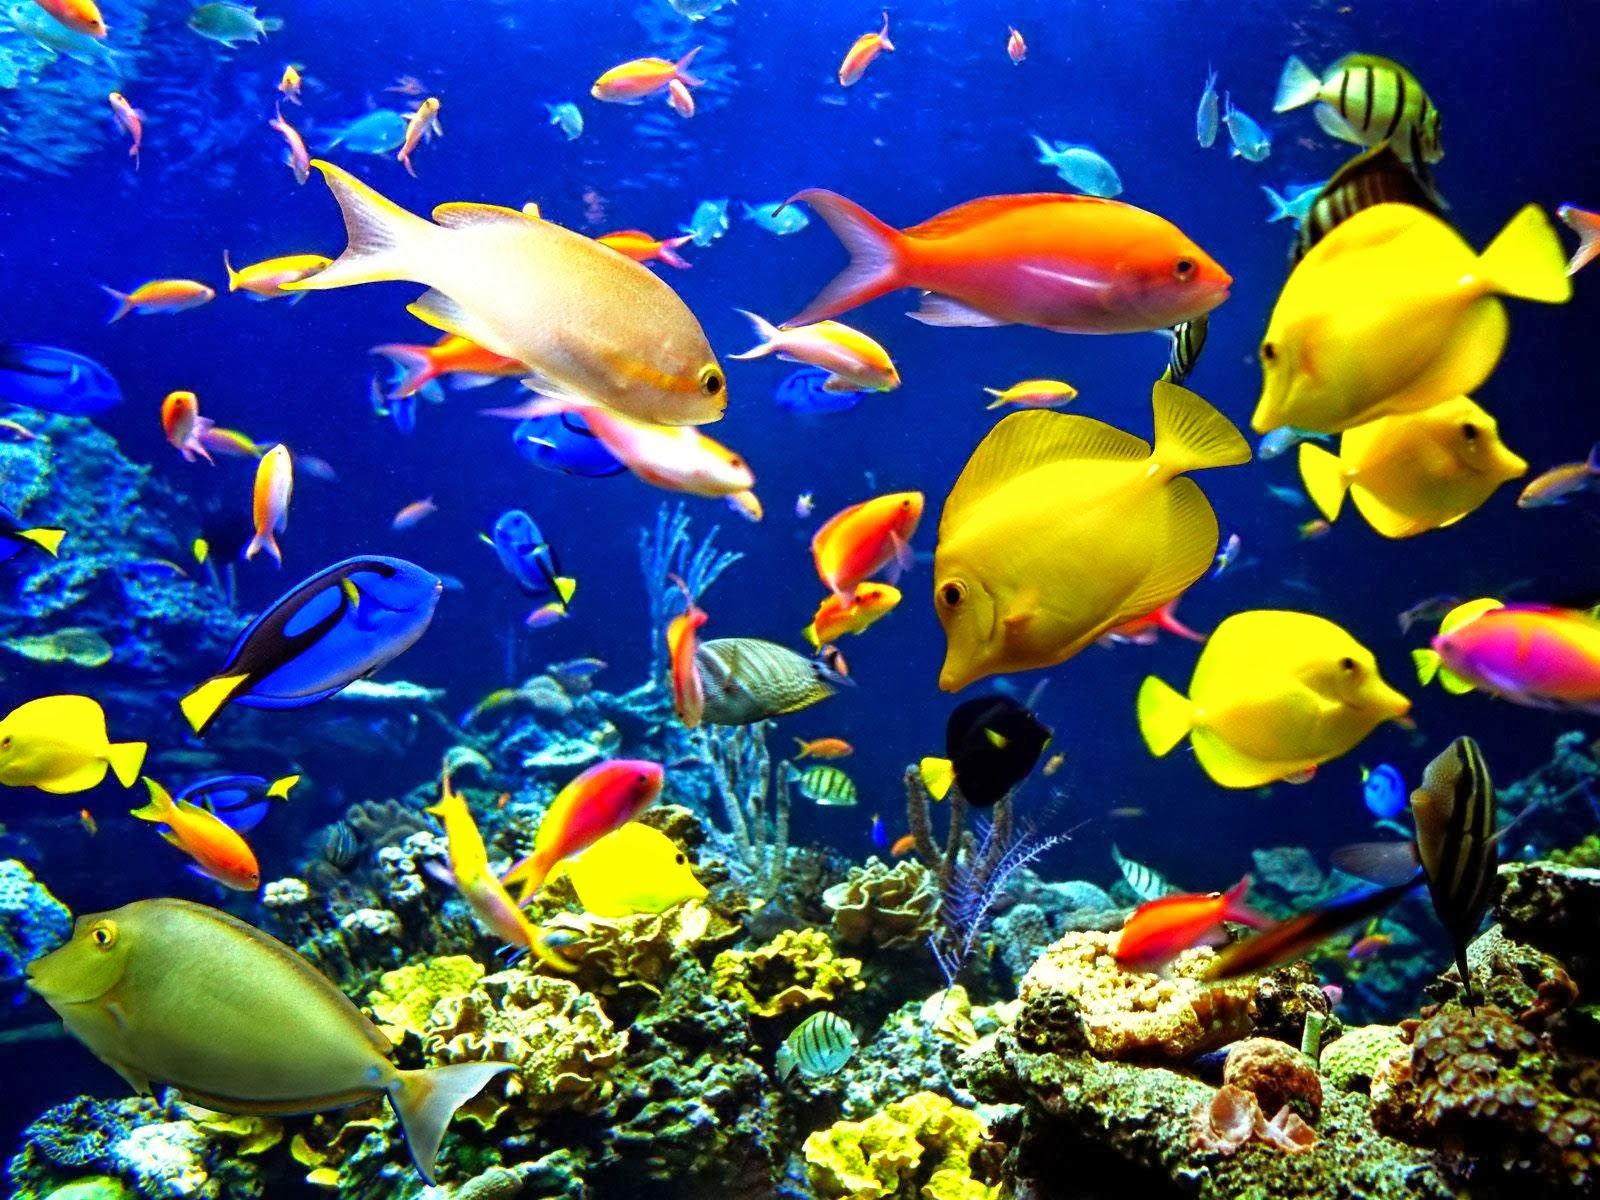 Desktop moving fish wallpaper download Download 3d HD colour design 1600x1200